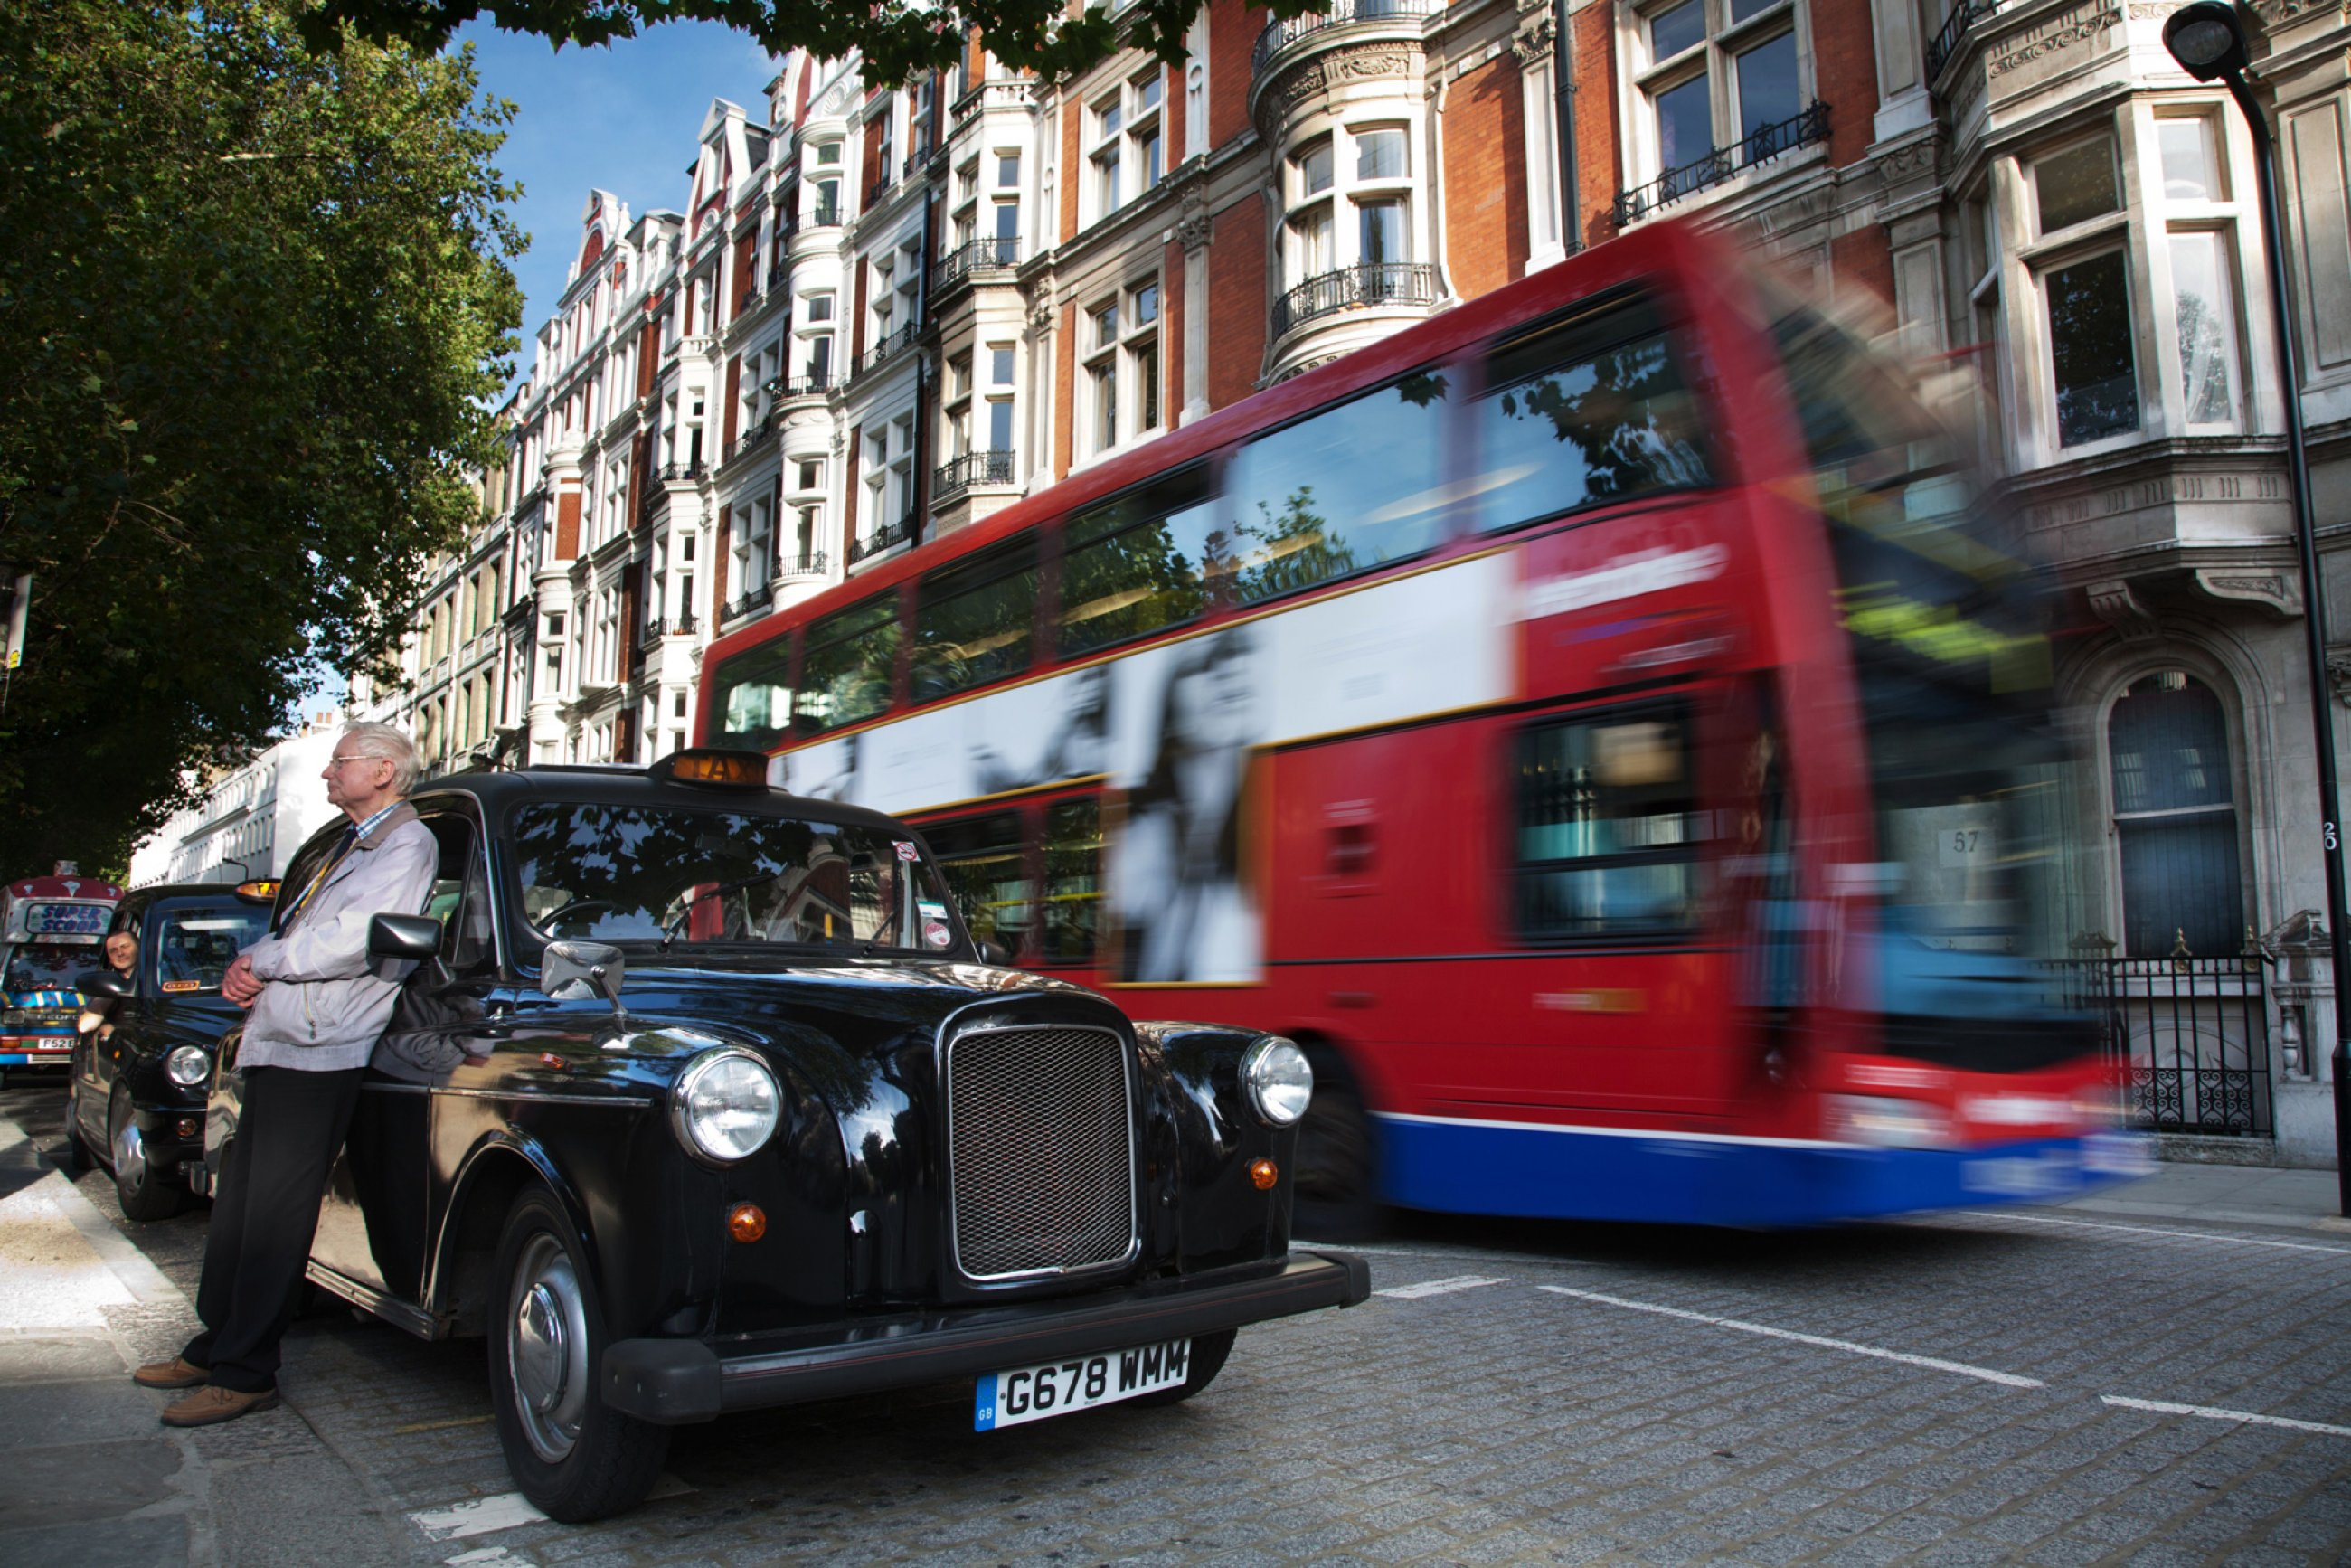 https://bubo.sk/uploads/galleries/7350/wikipedia-london-cabbie-and-taxi-2488.jpg